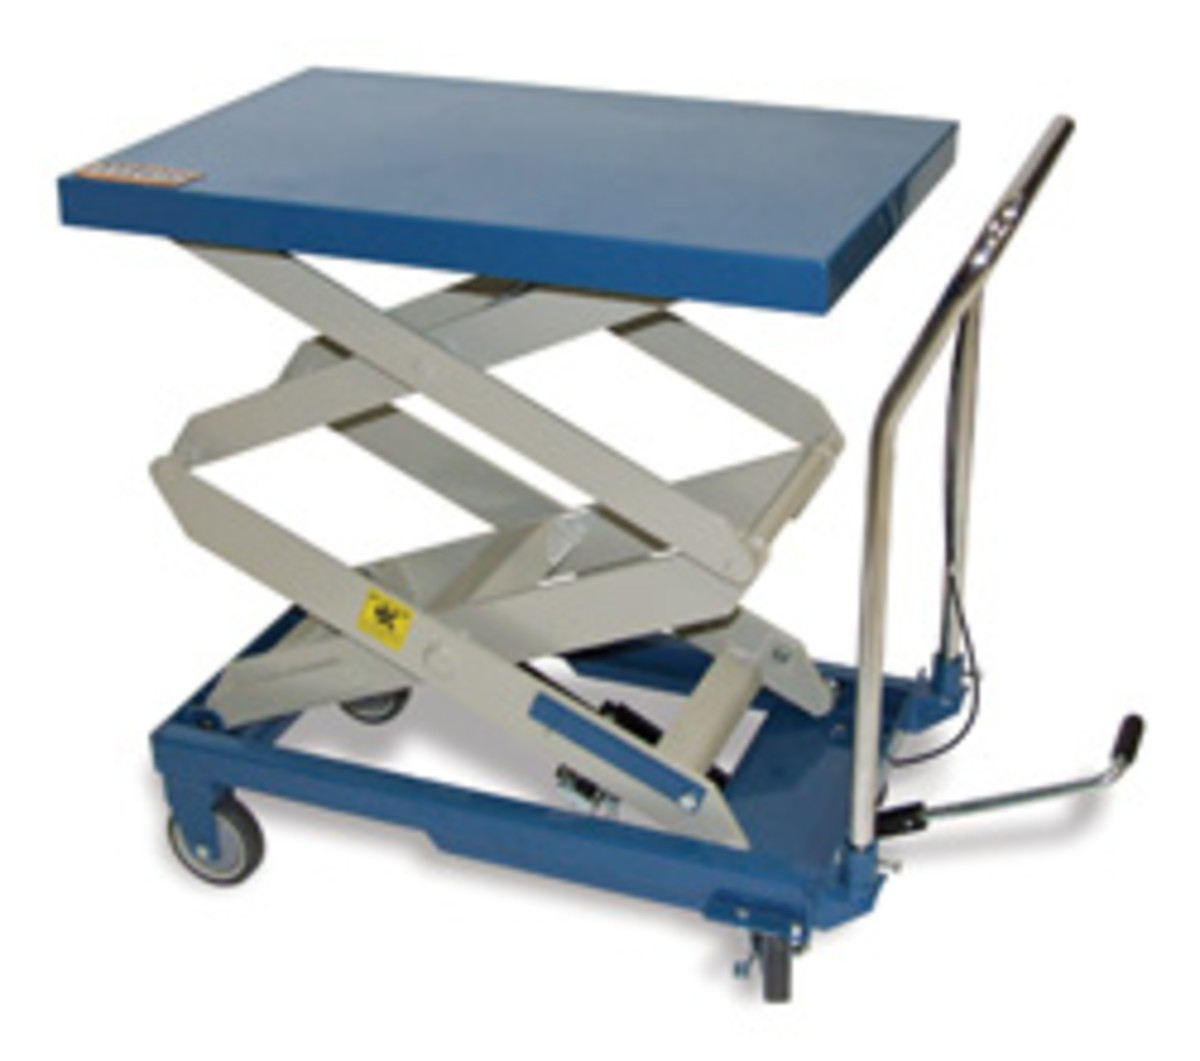 Baileigh's single-arm hydraulic lift cart.